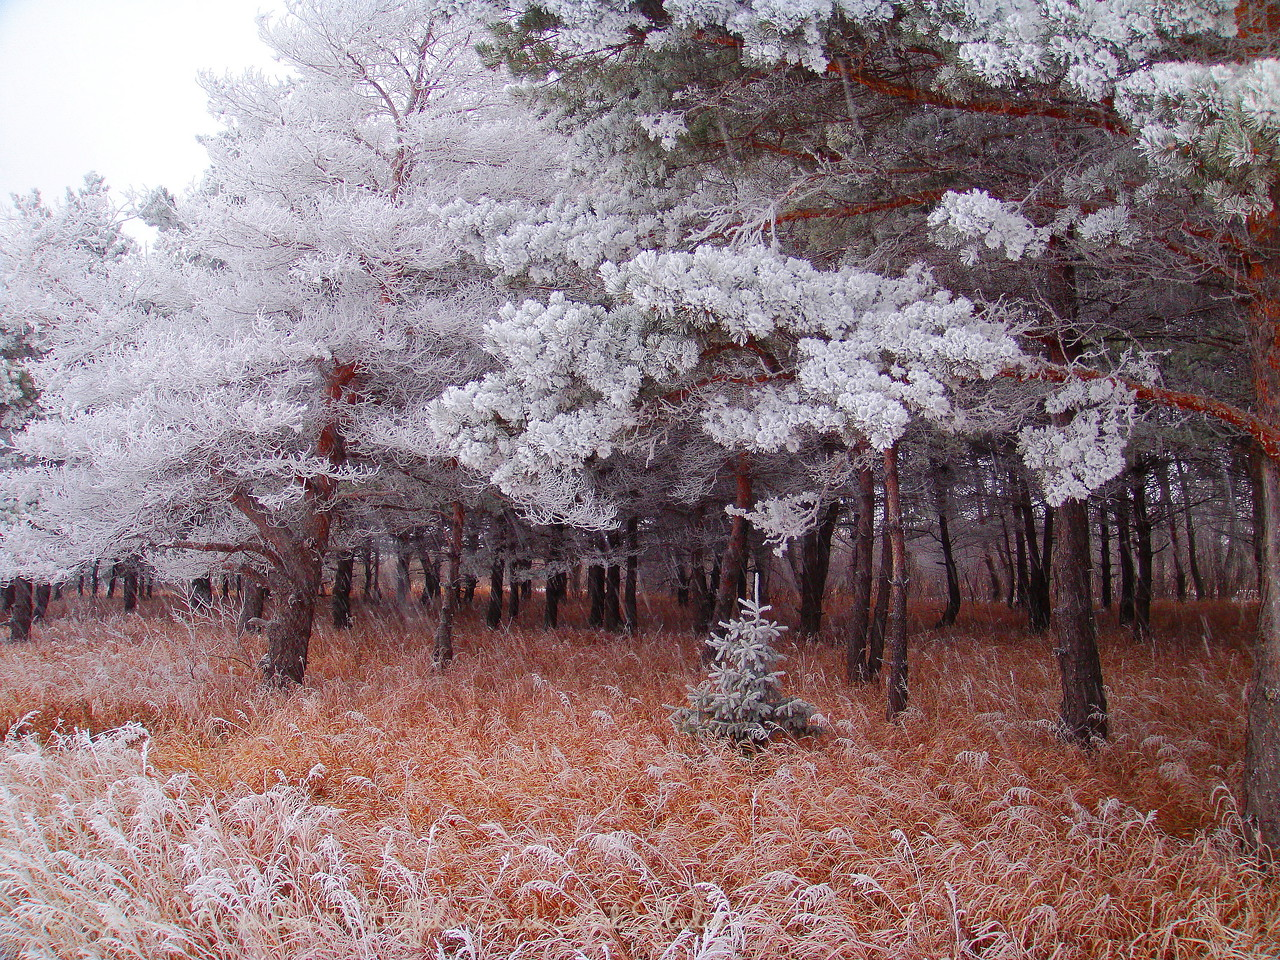 Snowing on the Frosty Pines